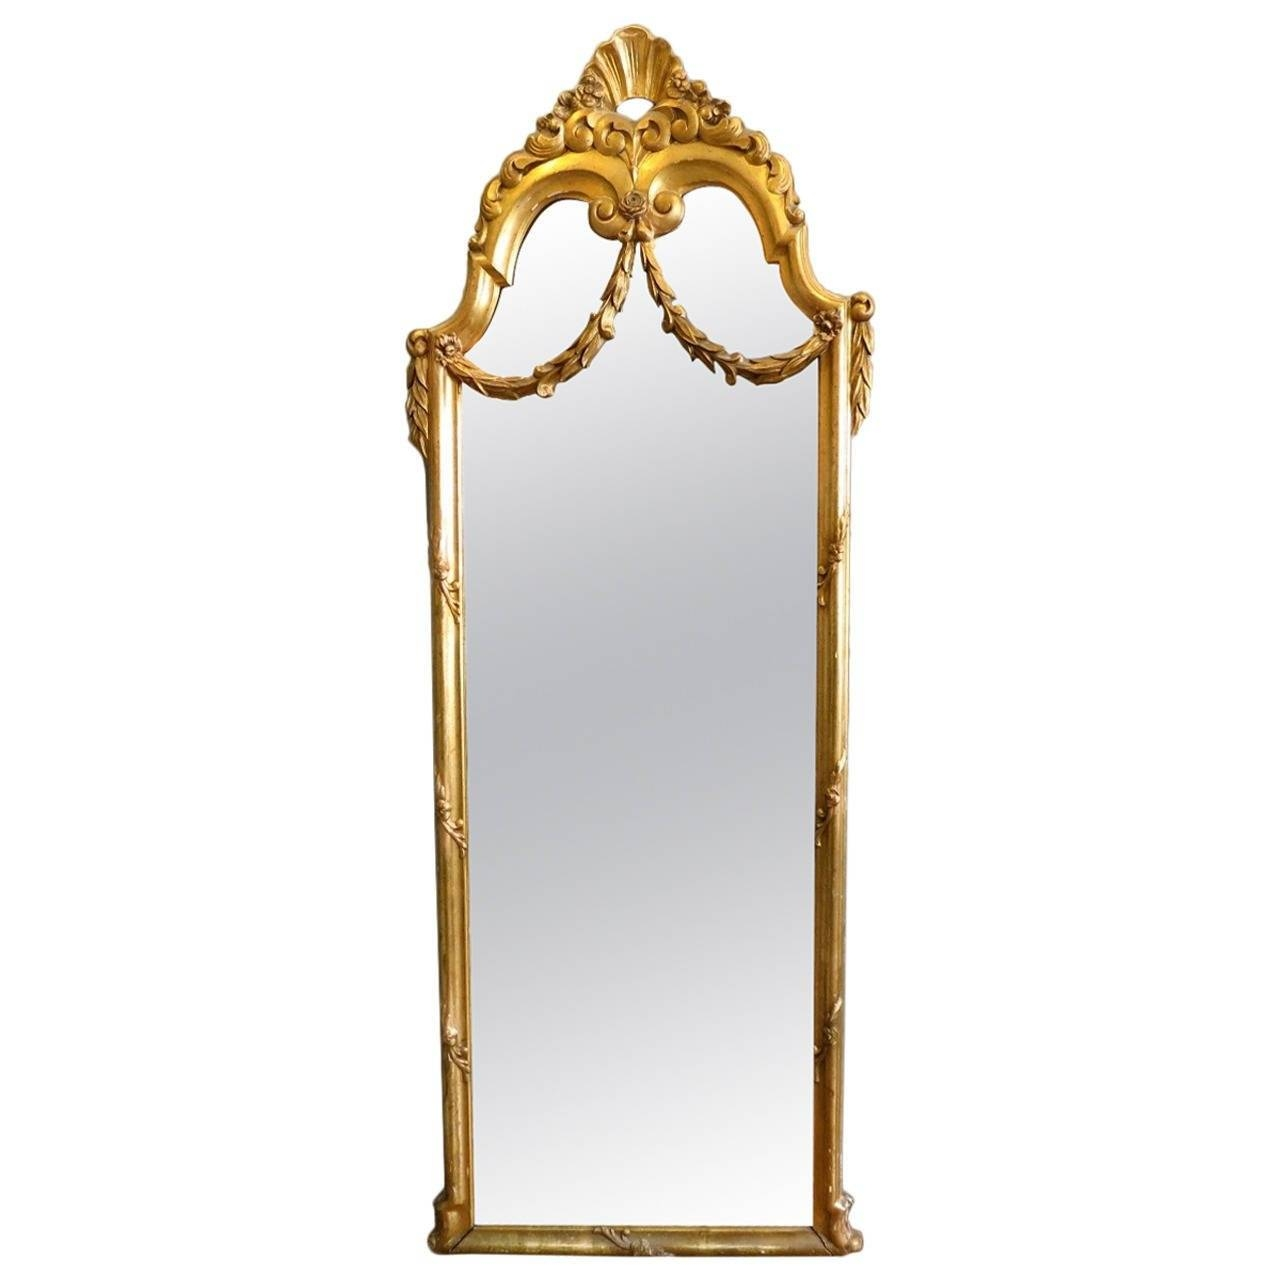 Antique French Gold Gilt Floor Standing Mirror At 1Stdibs Regarding Antique Gold Mirrors (View 22 of 25)